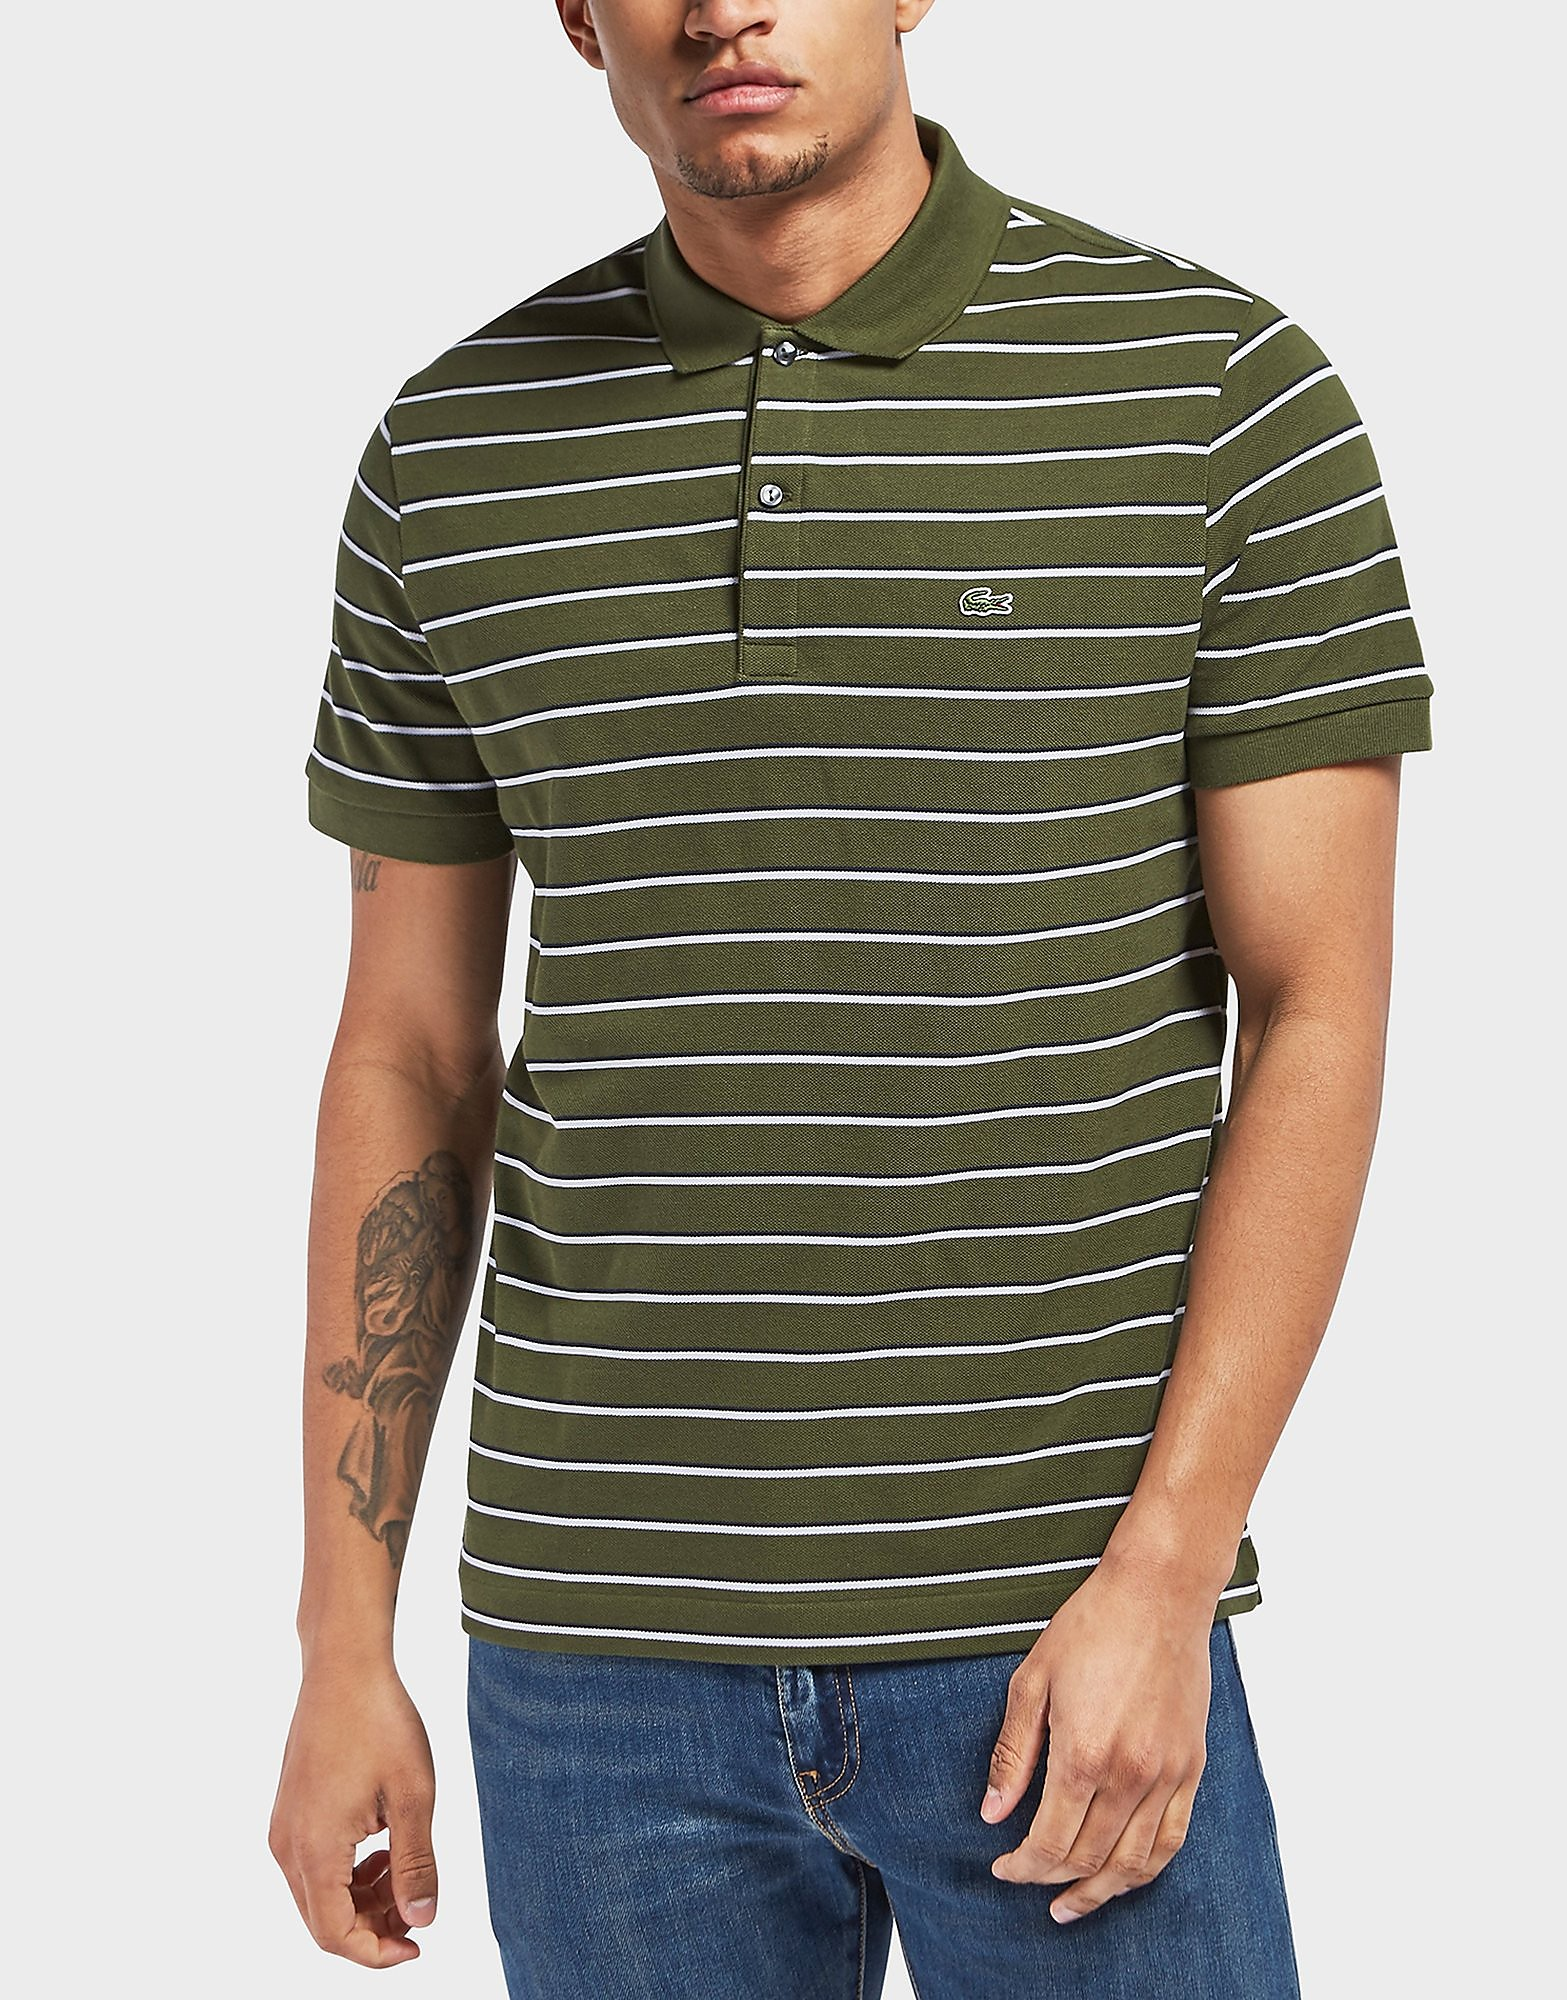 Lacoste Pique Stripe Short Sleeve Polo Shirt